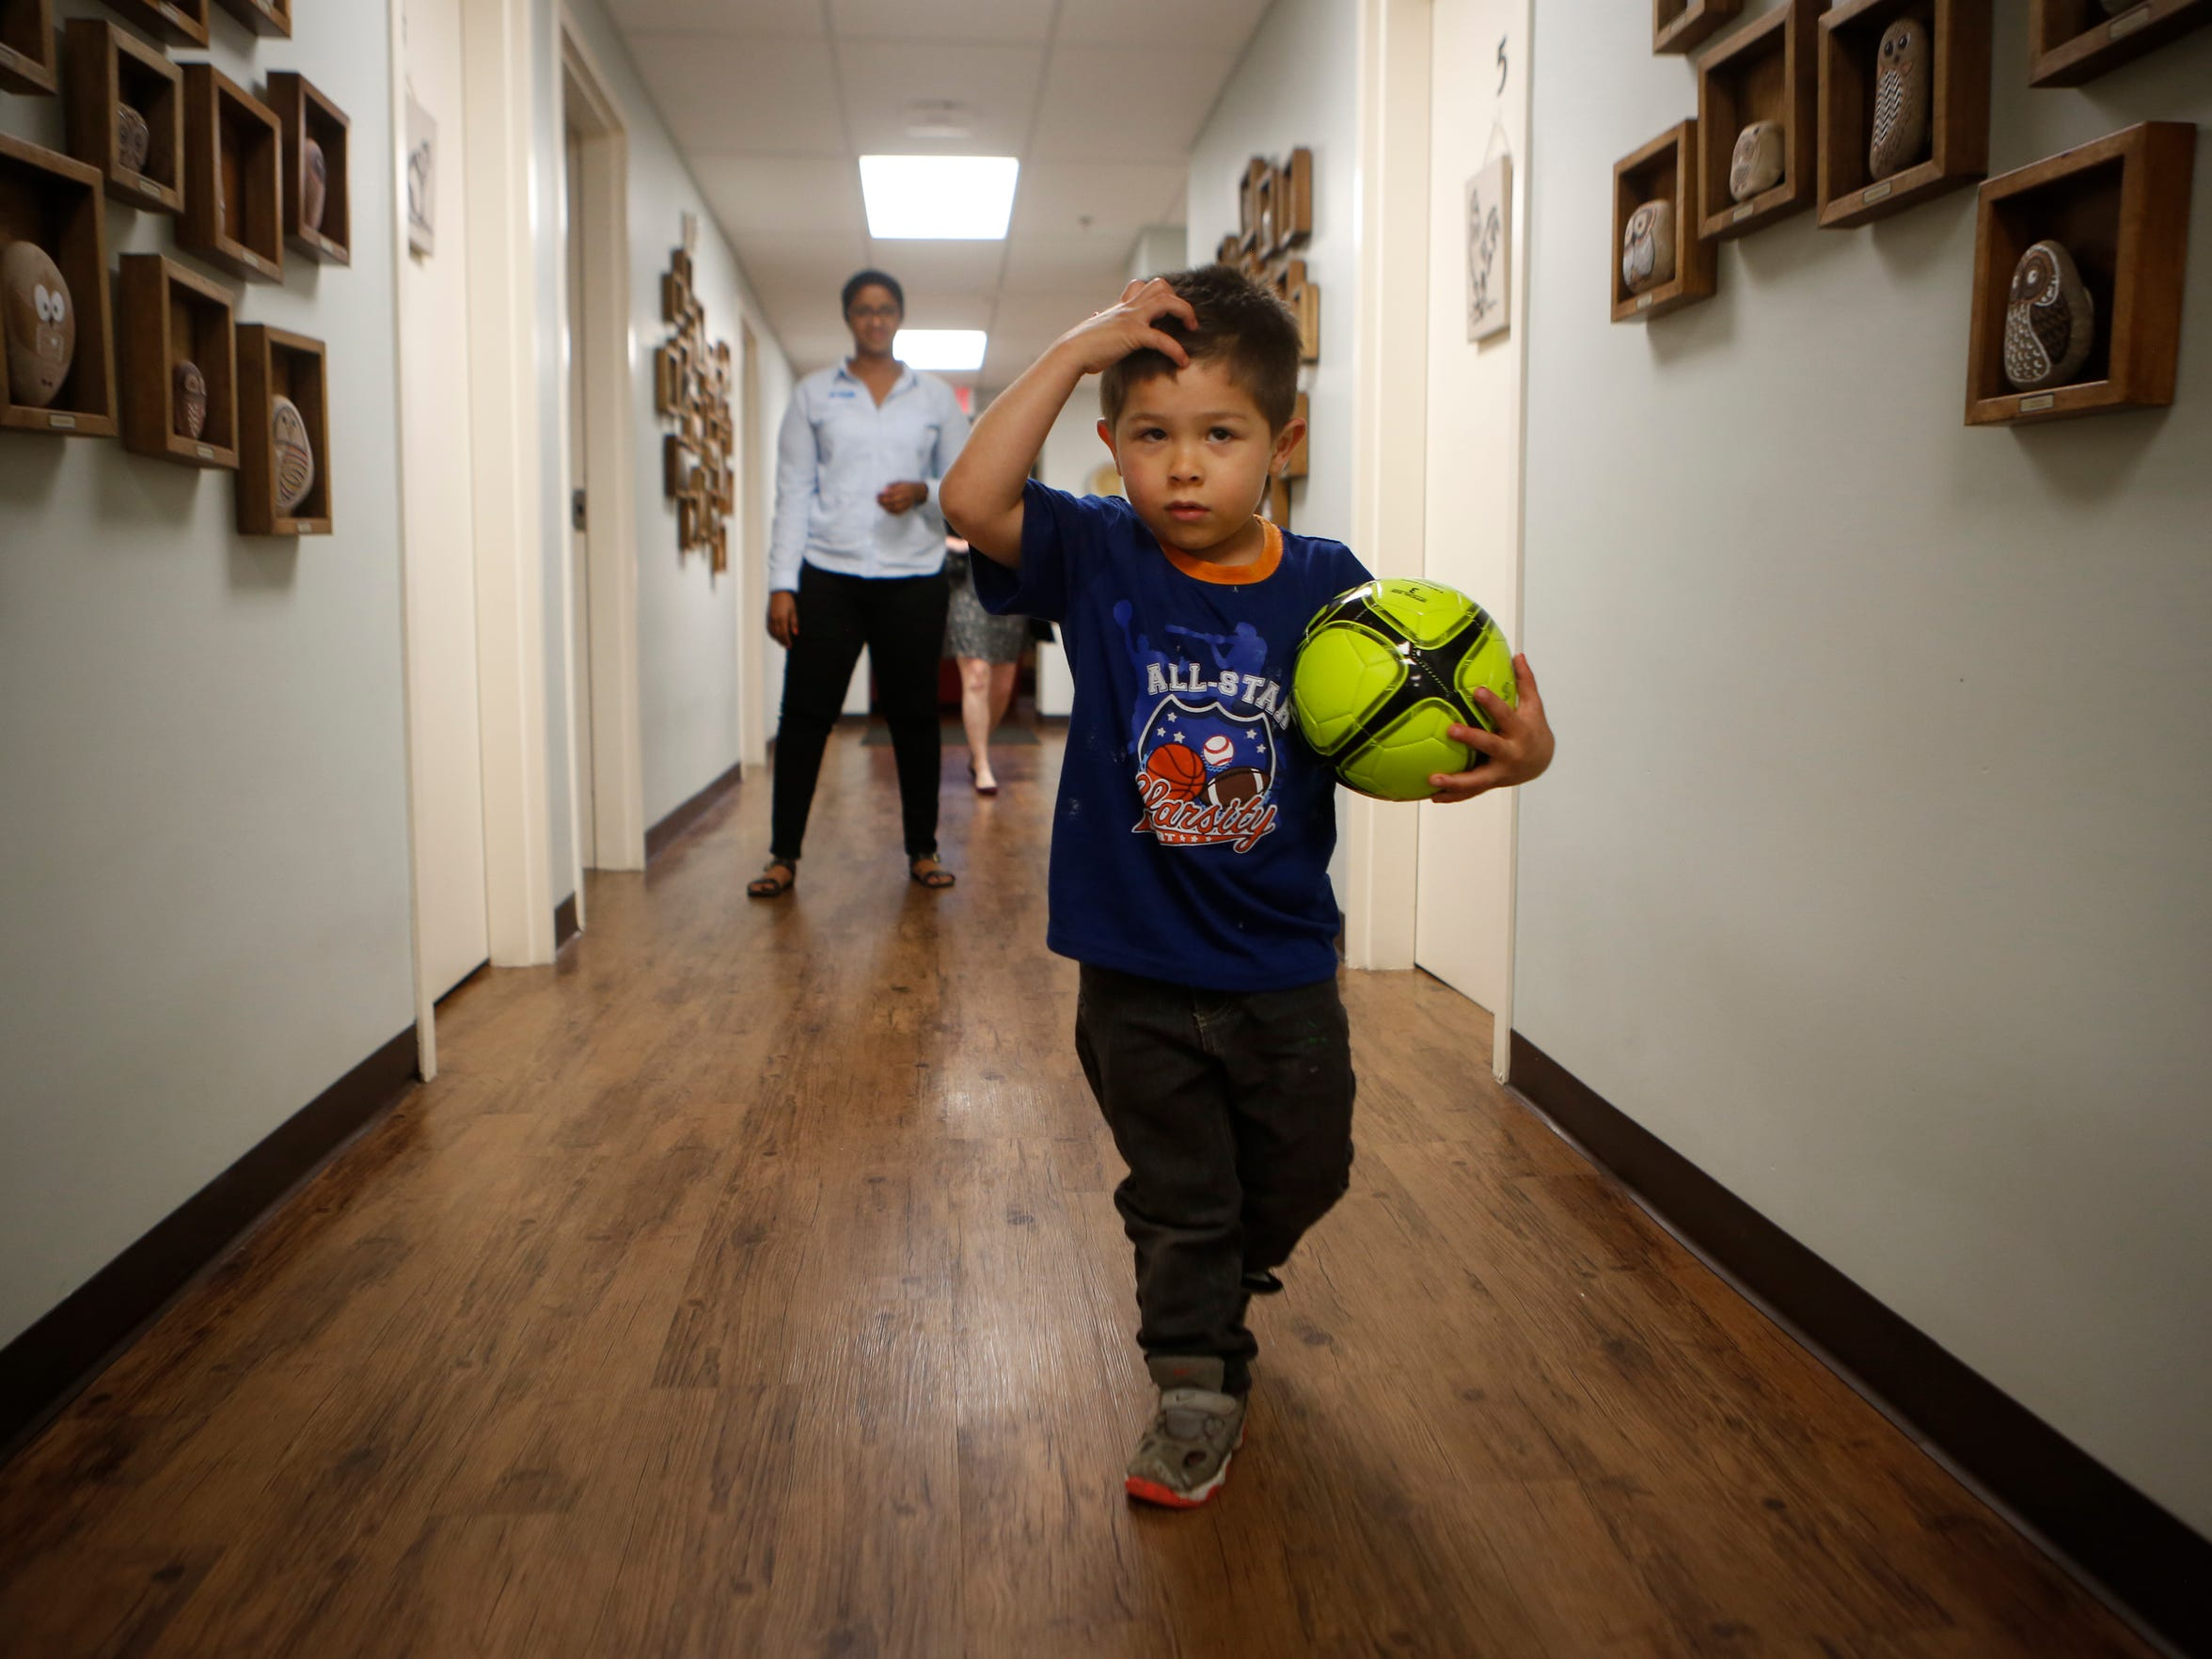 Kymbal Pruett's son Miguel played ball in the hallway